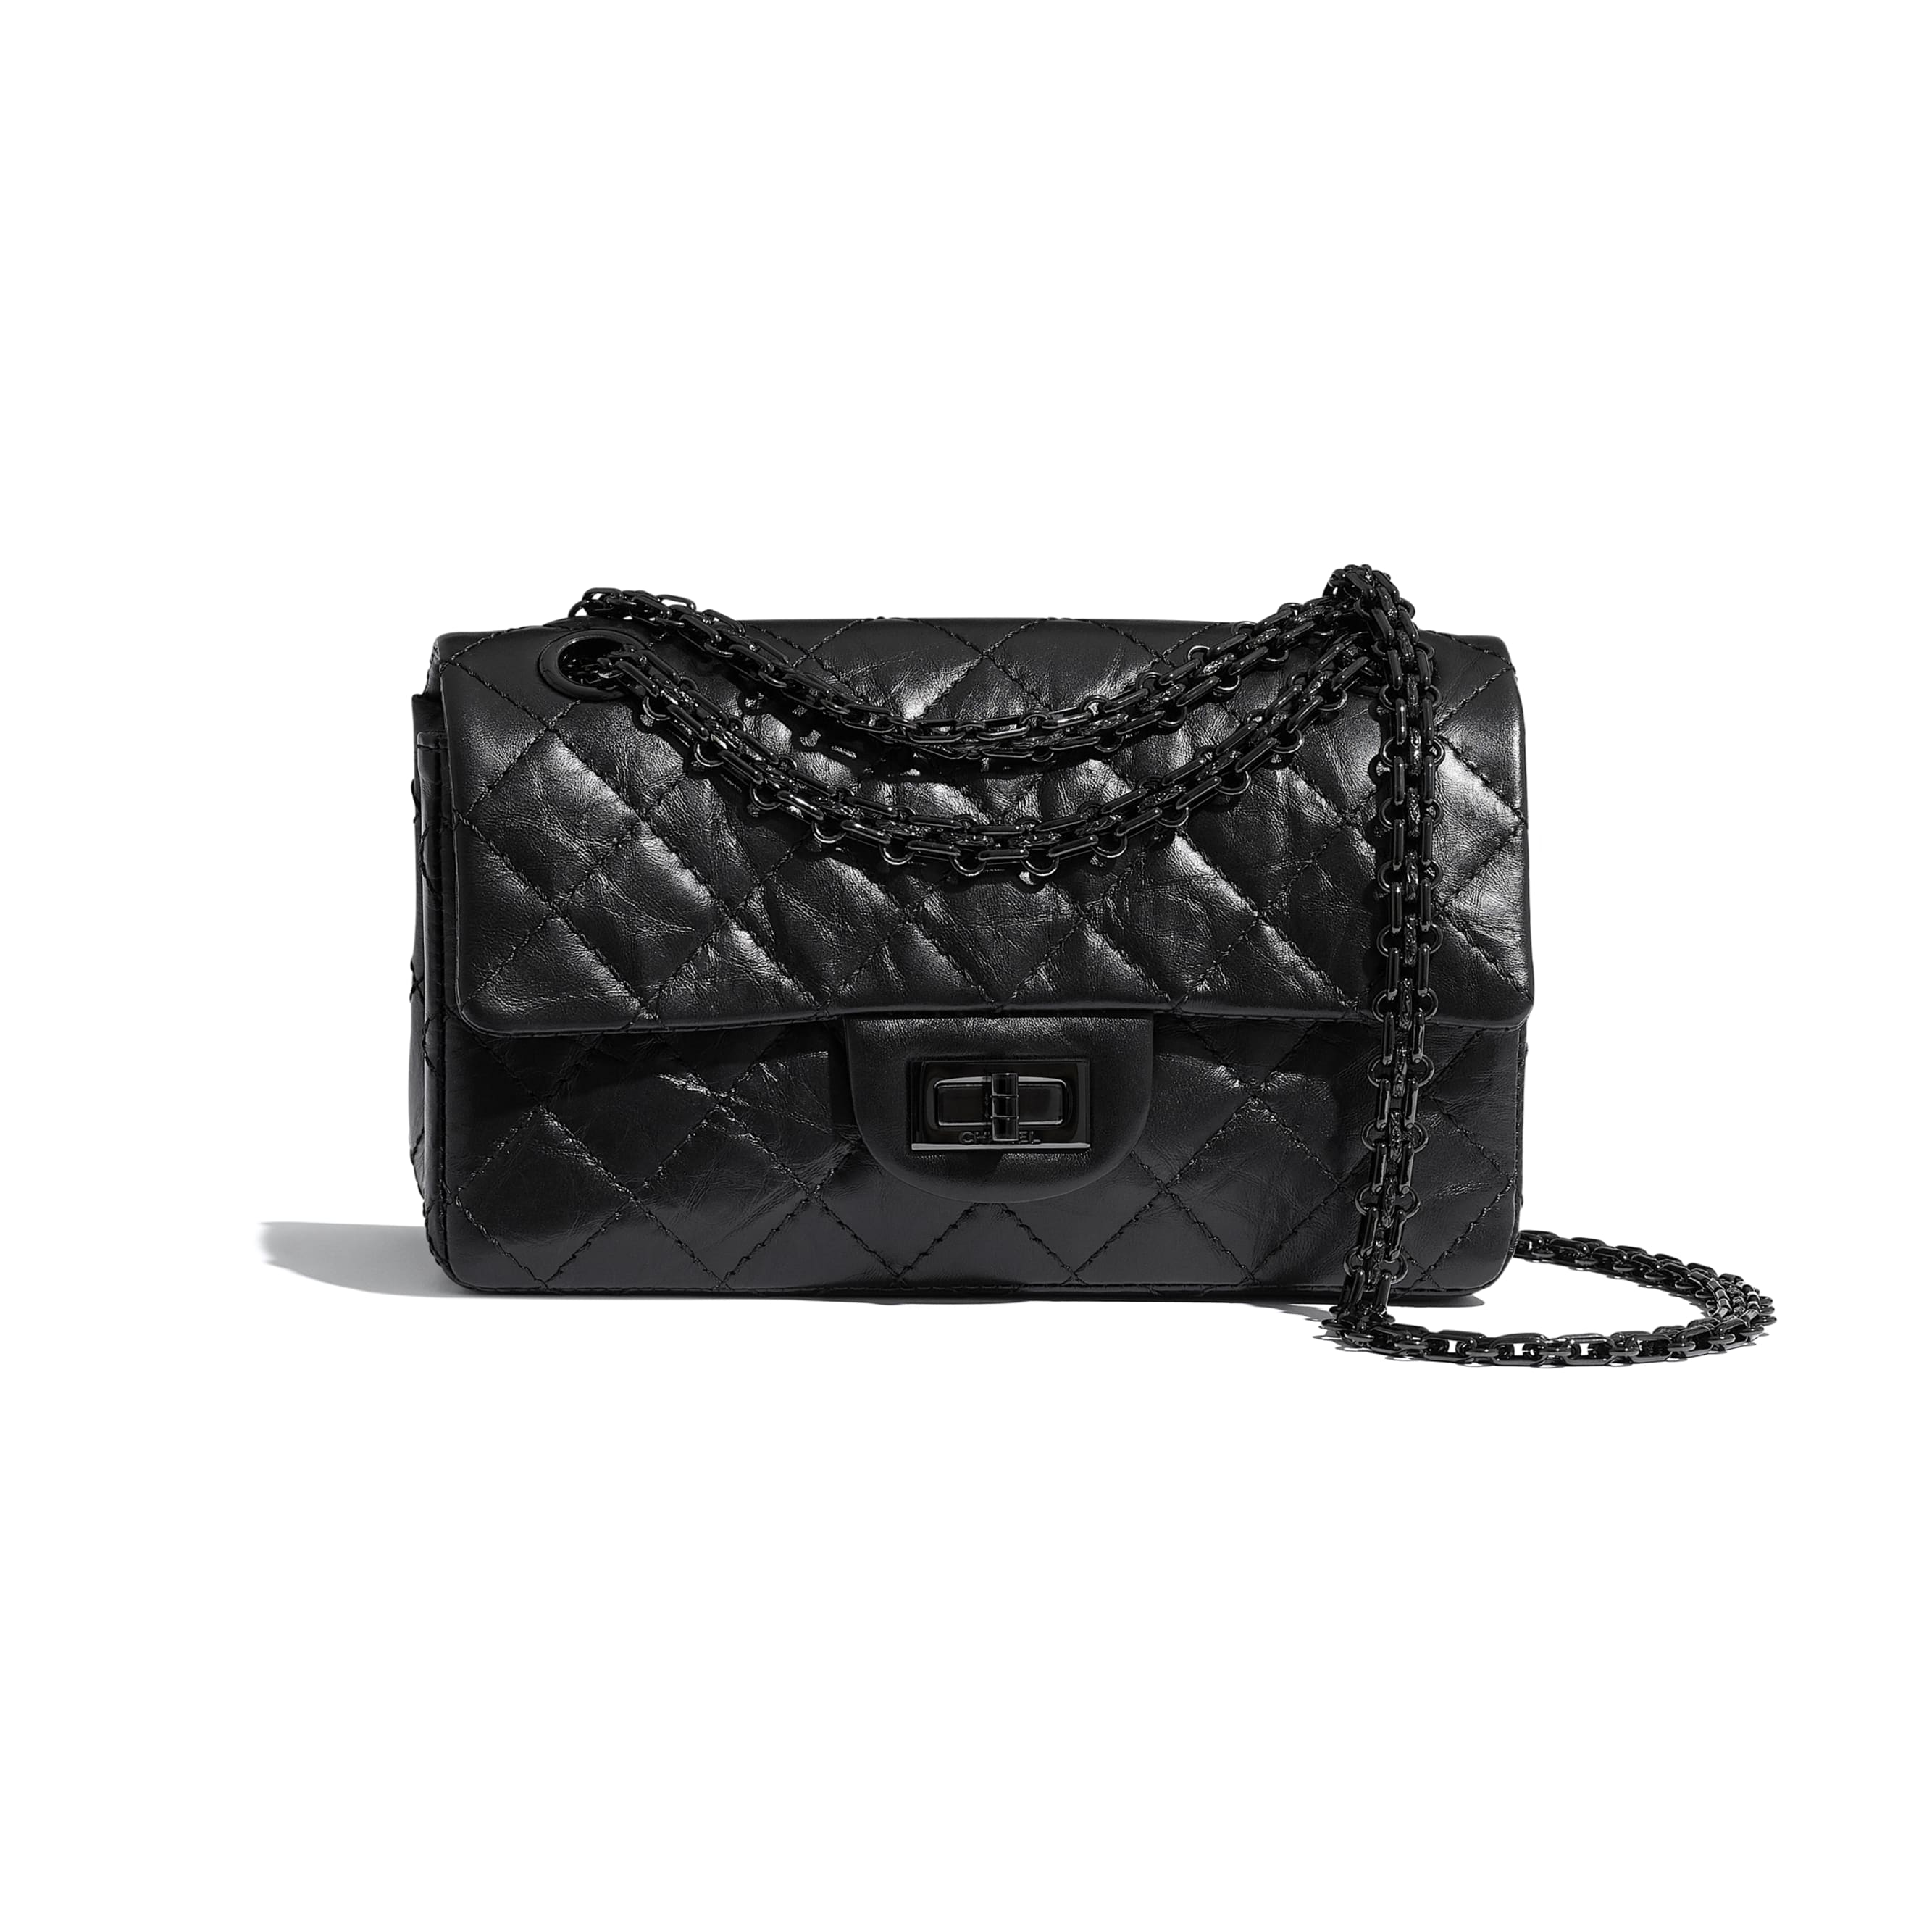 Small 2.55 Handbag - Black - Aged Calfskin & Black Metal - CHANEL - Default view - see standard sized version